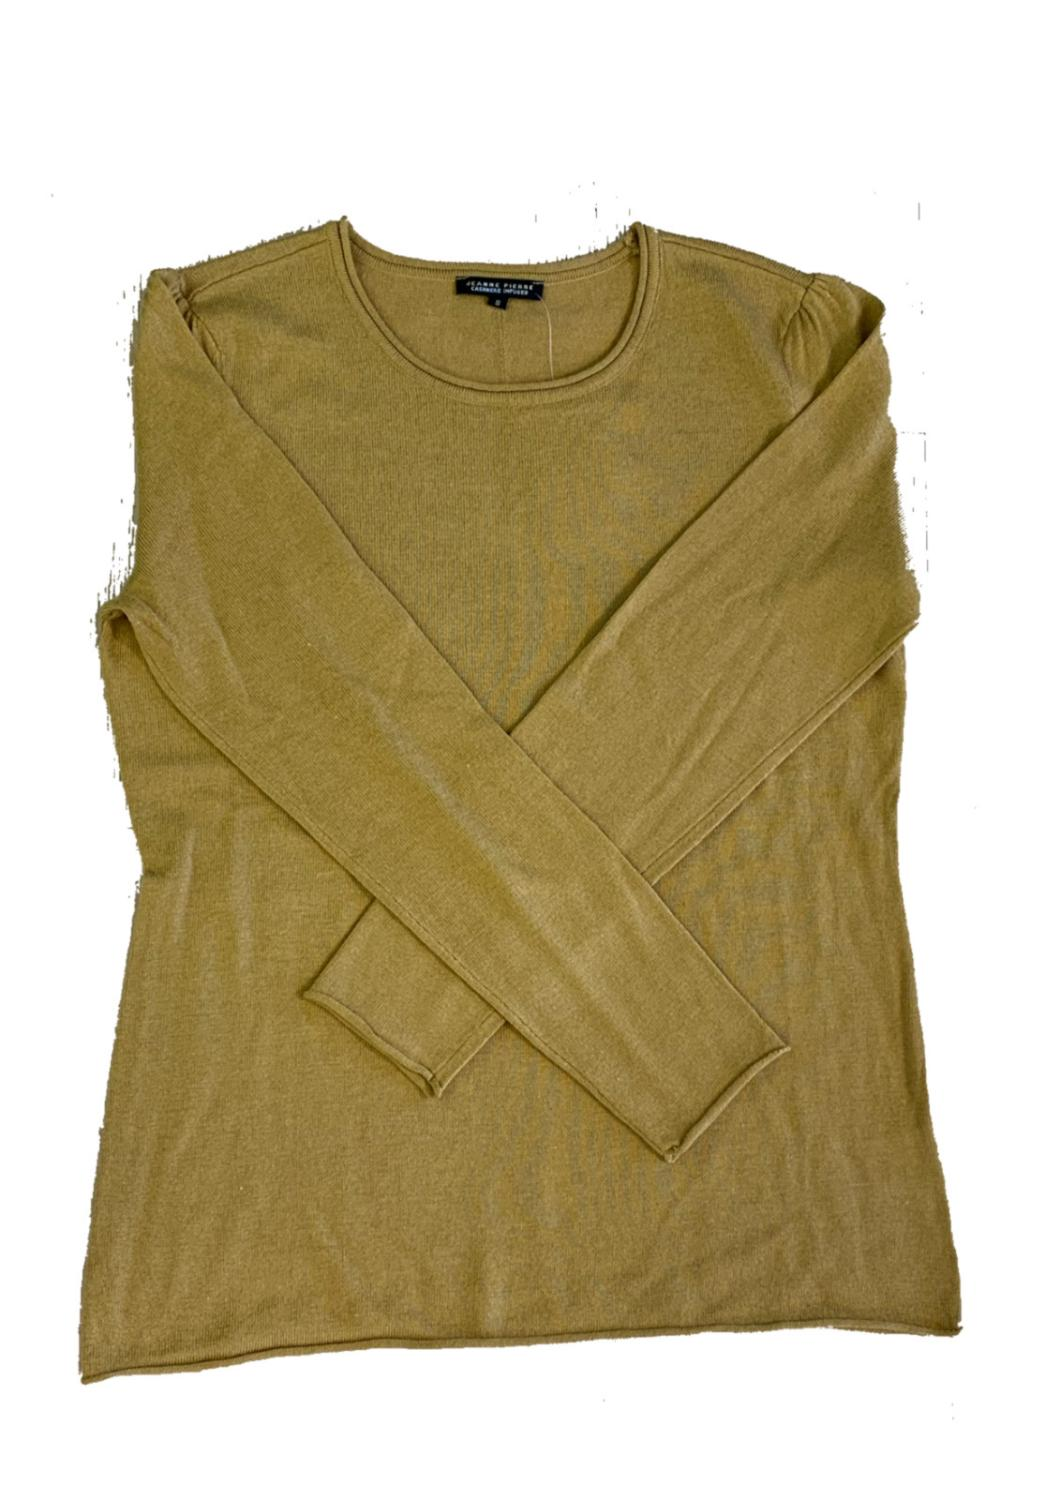 Jeanne Pierre 5% Cashmere Crew Gold Sweater